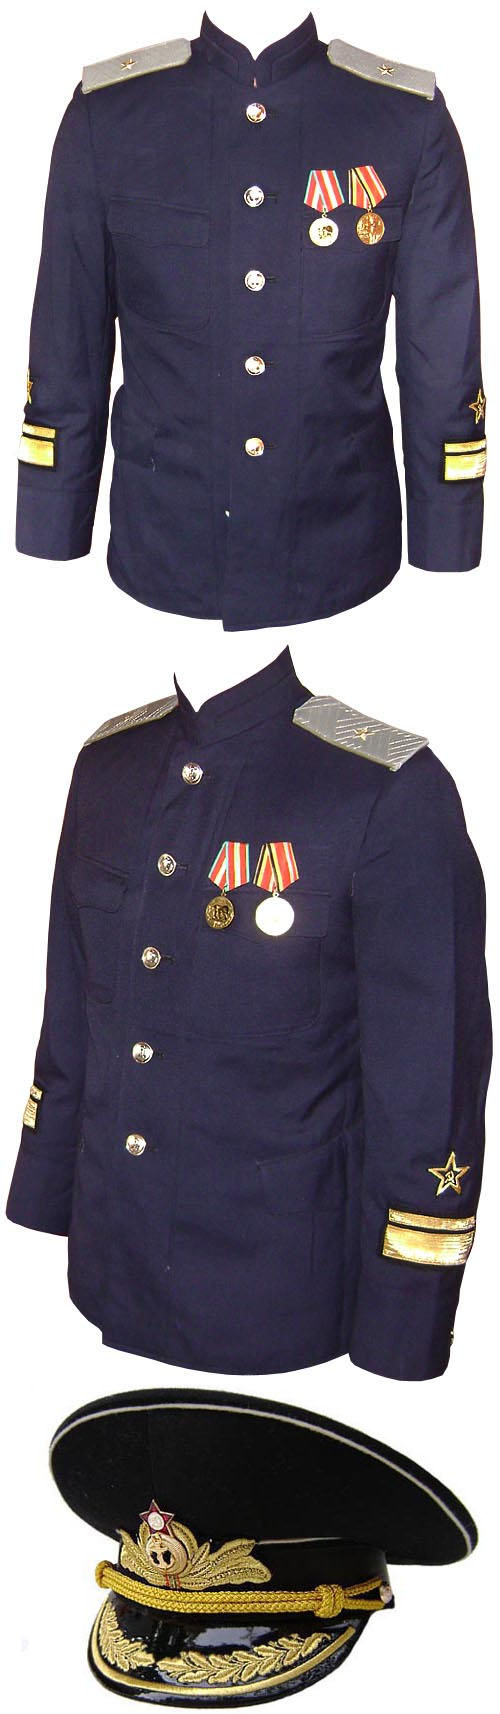 Russian Naval ADMIRAL JACKET Suit USSR military Uniform